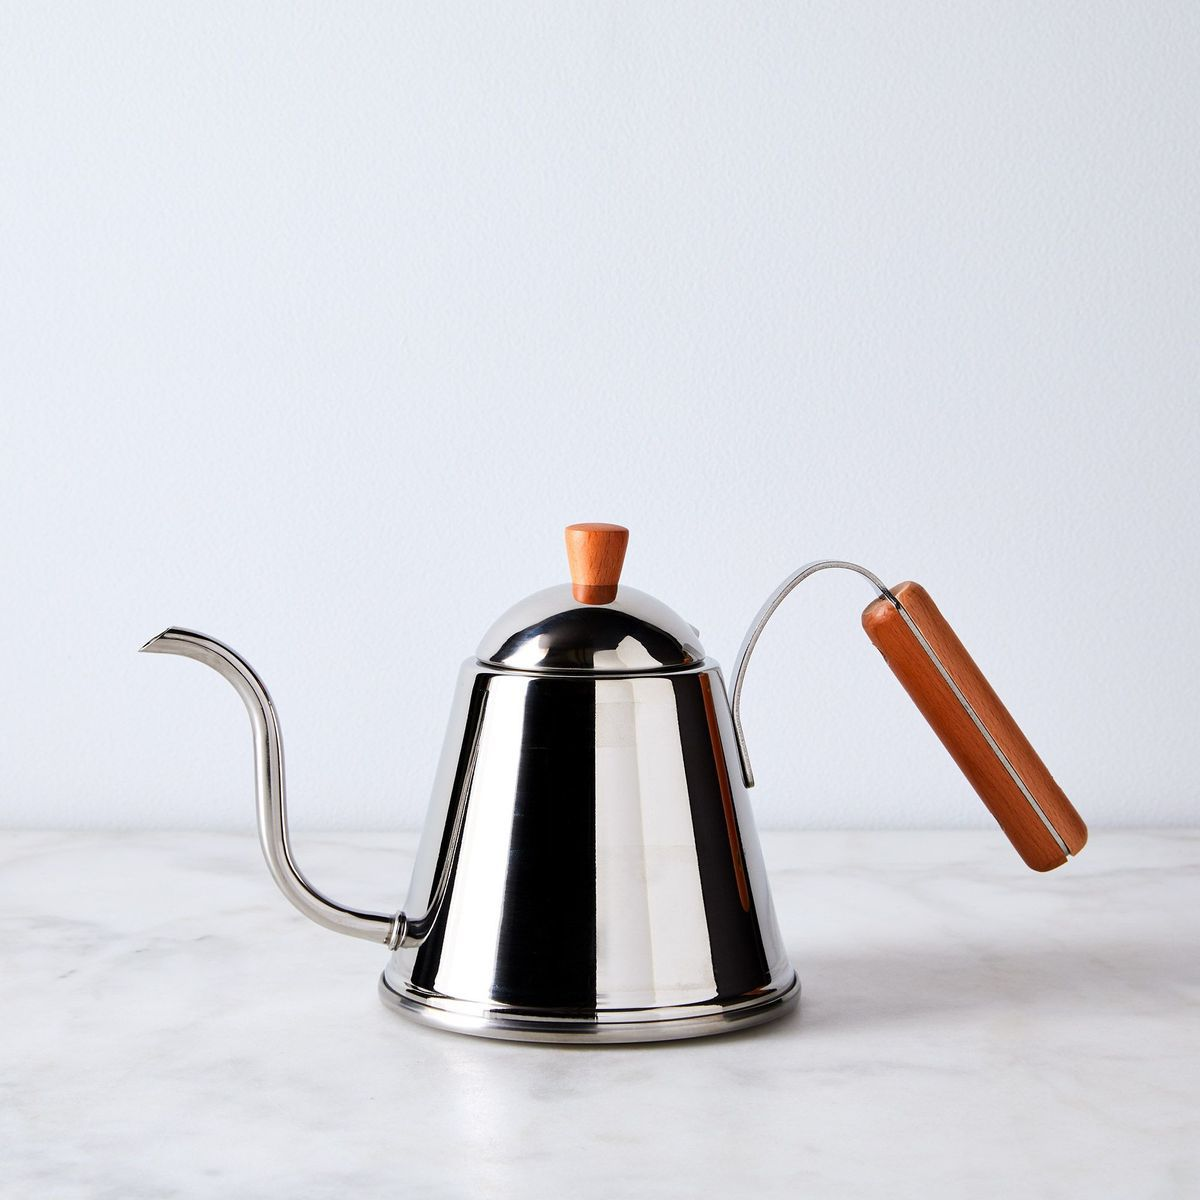 A stainless steel Japanese coffee kettle